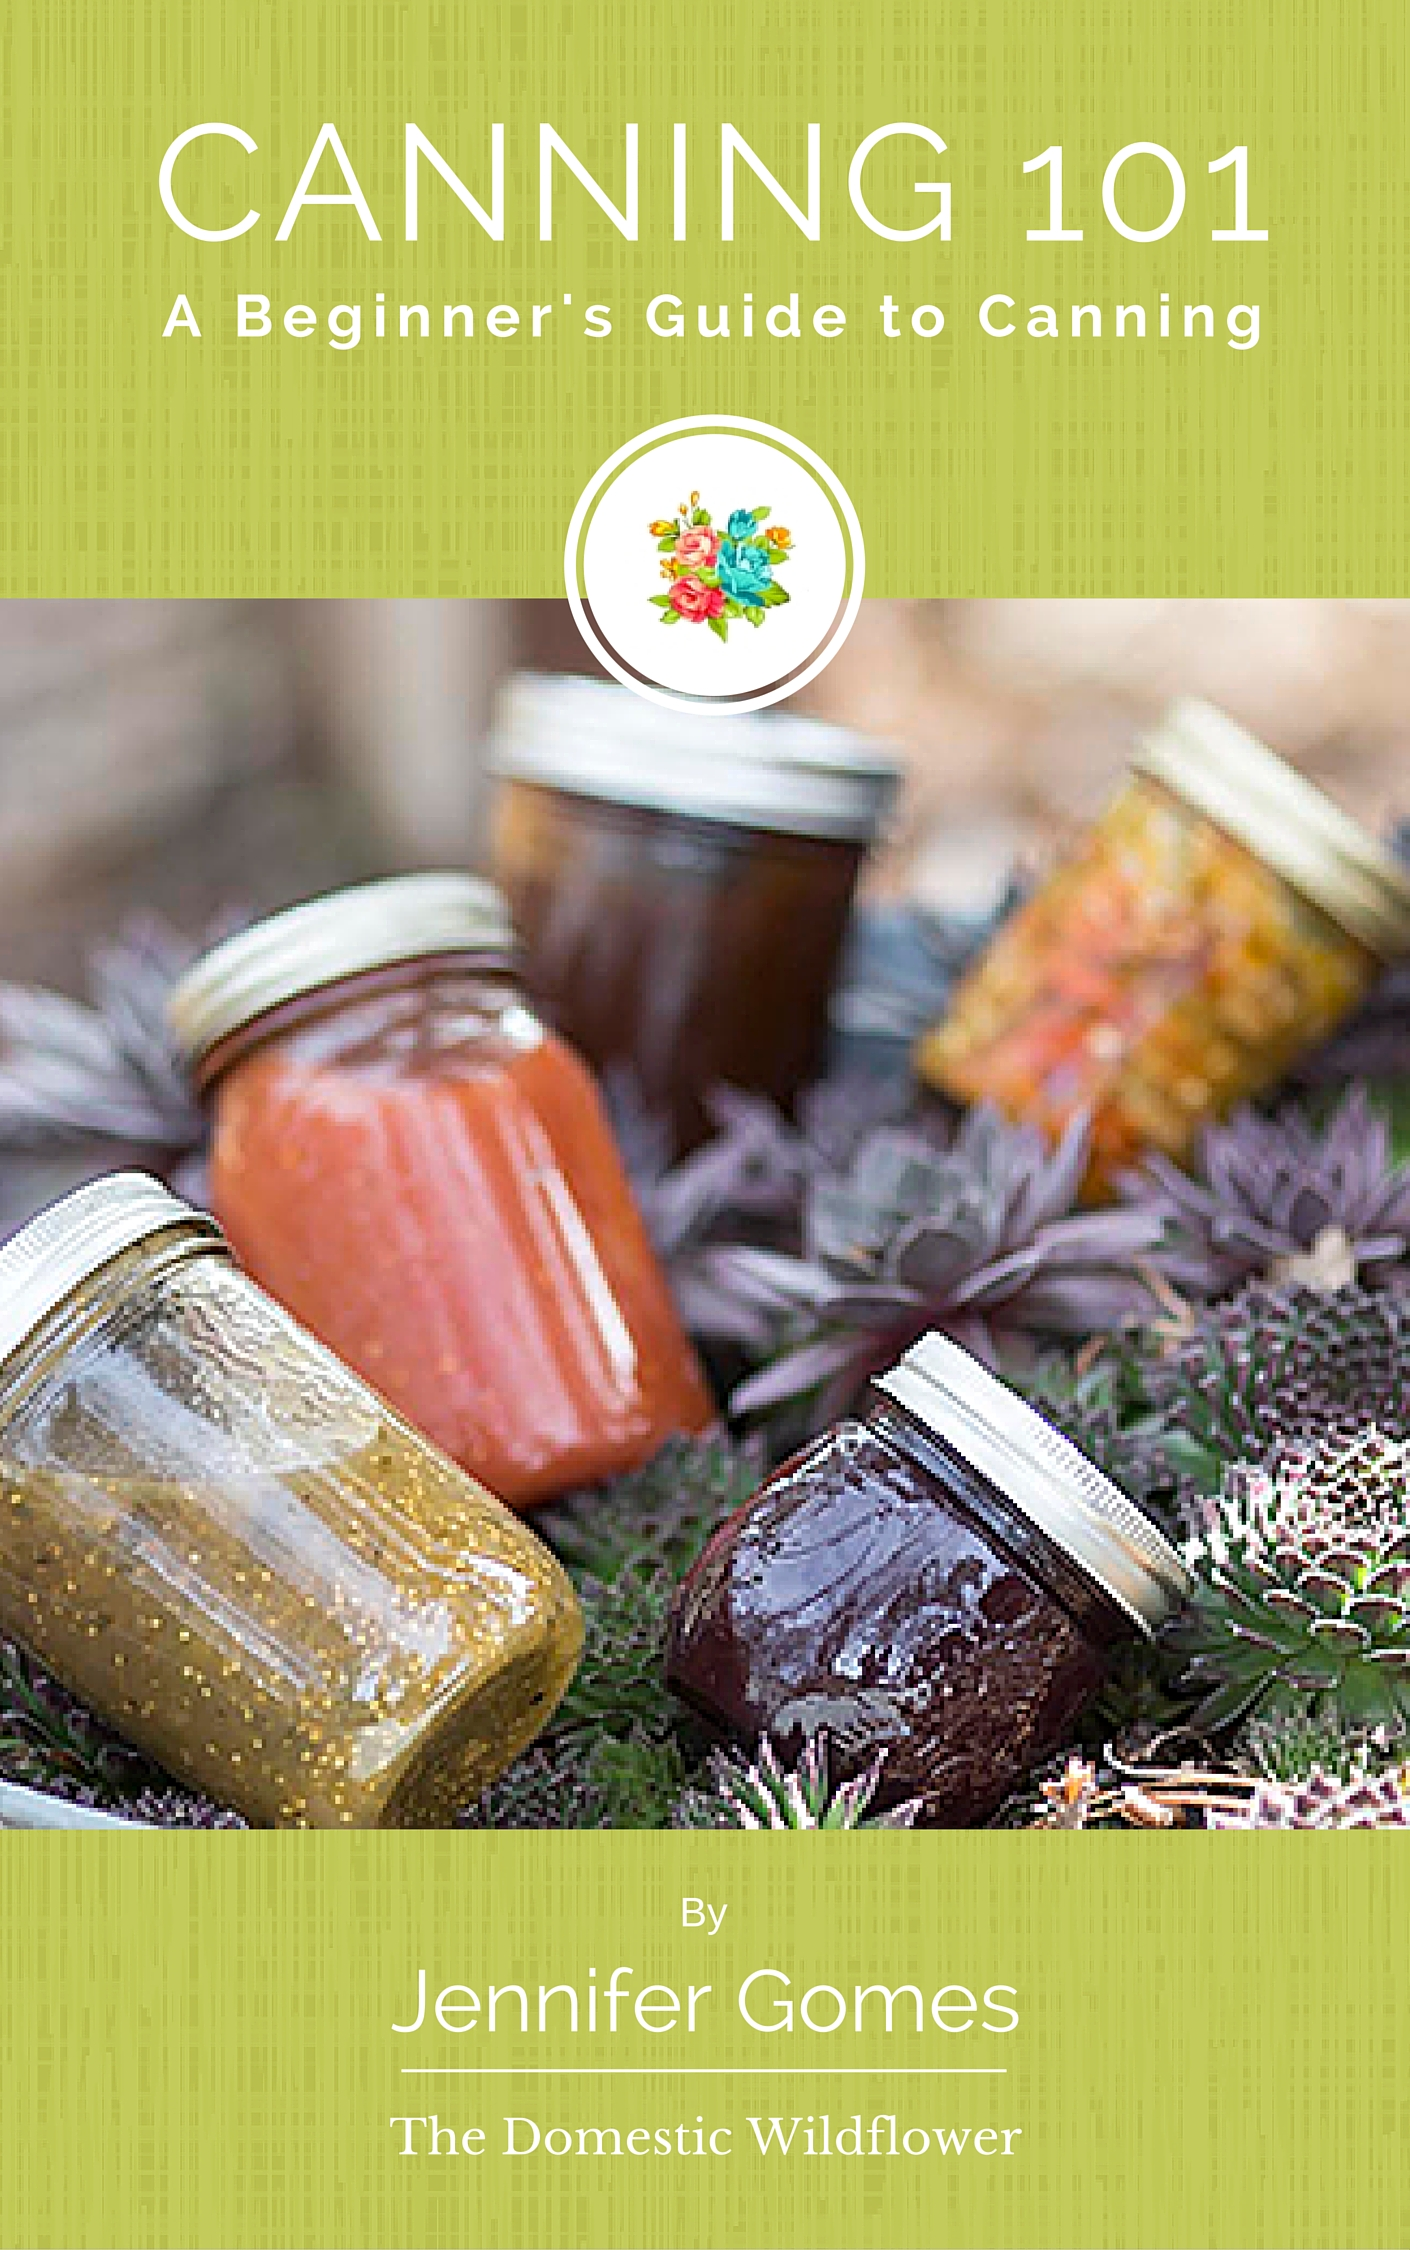 Canning 101: Canning for Beginners | The Domestic Wildflower ~ grab this super helpful ebook to explain everything you need to get started canning, even if you have never cooked before!